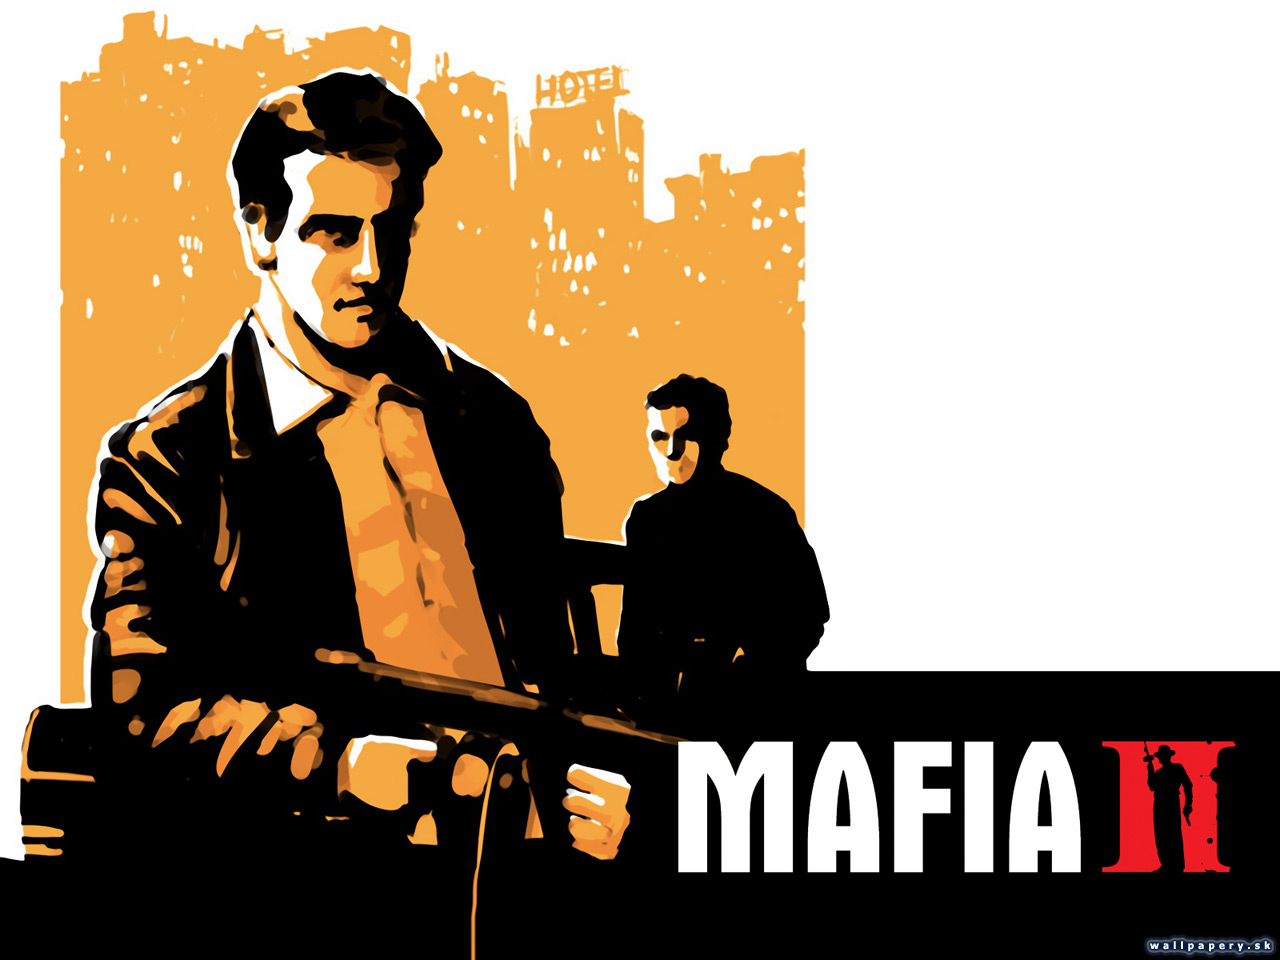 Mafia 2 - wallpaper 11